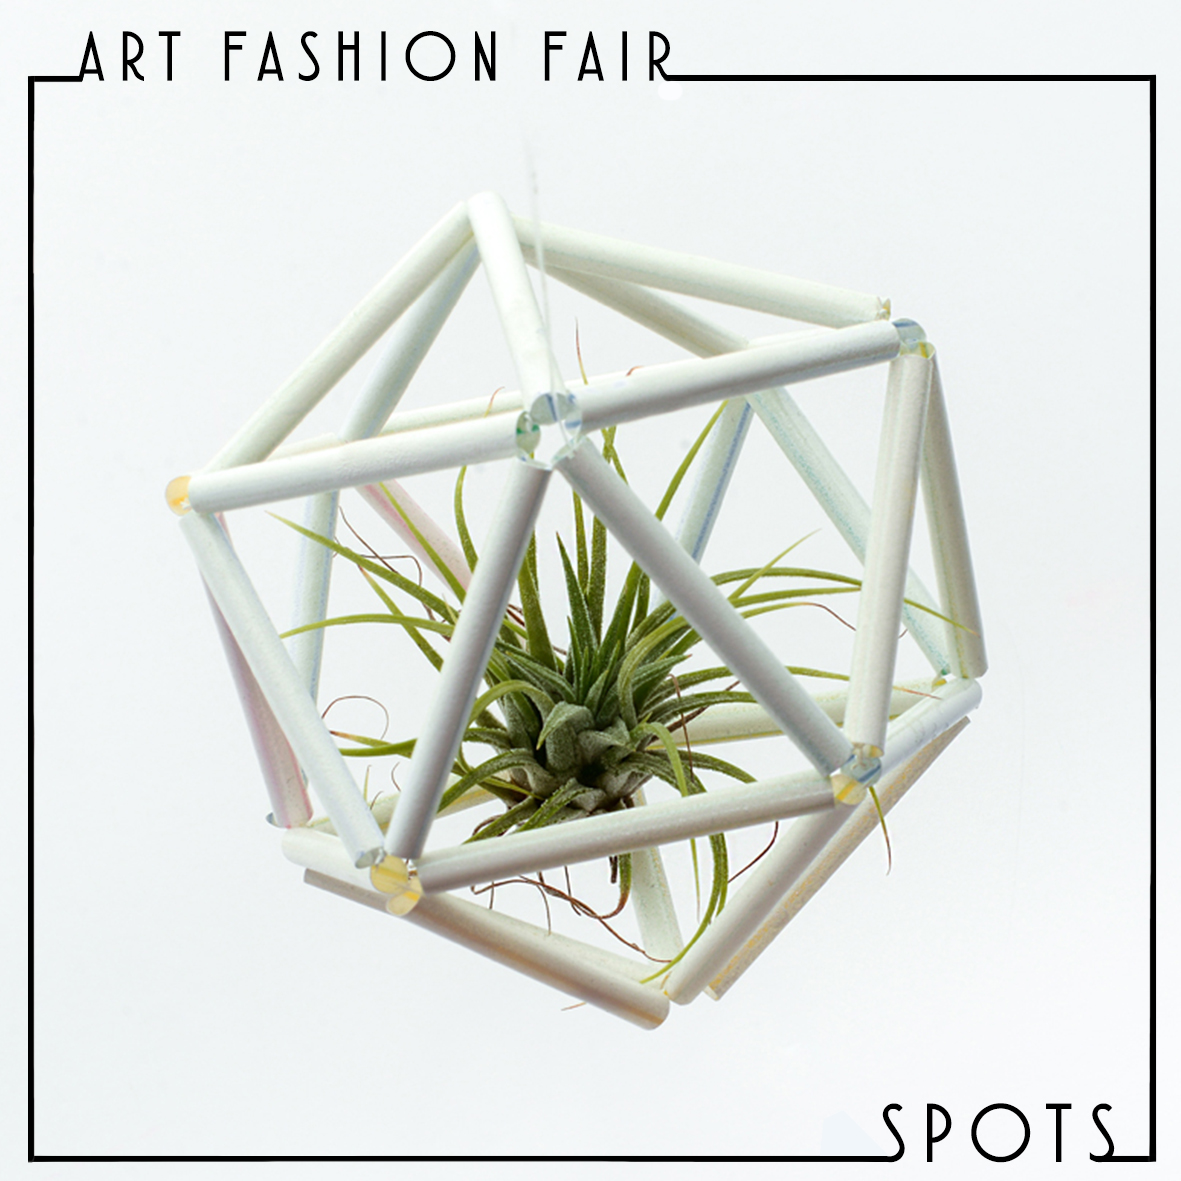 art fashion fair planta aeriana